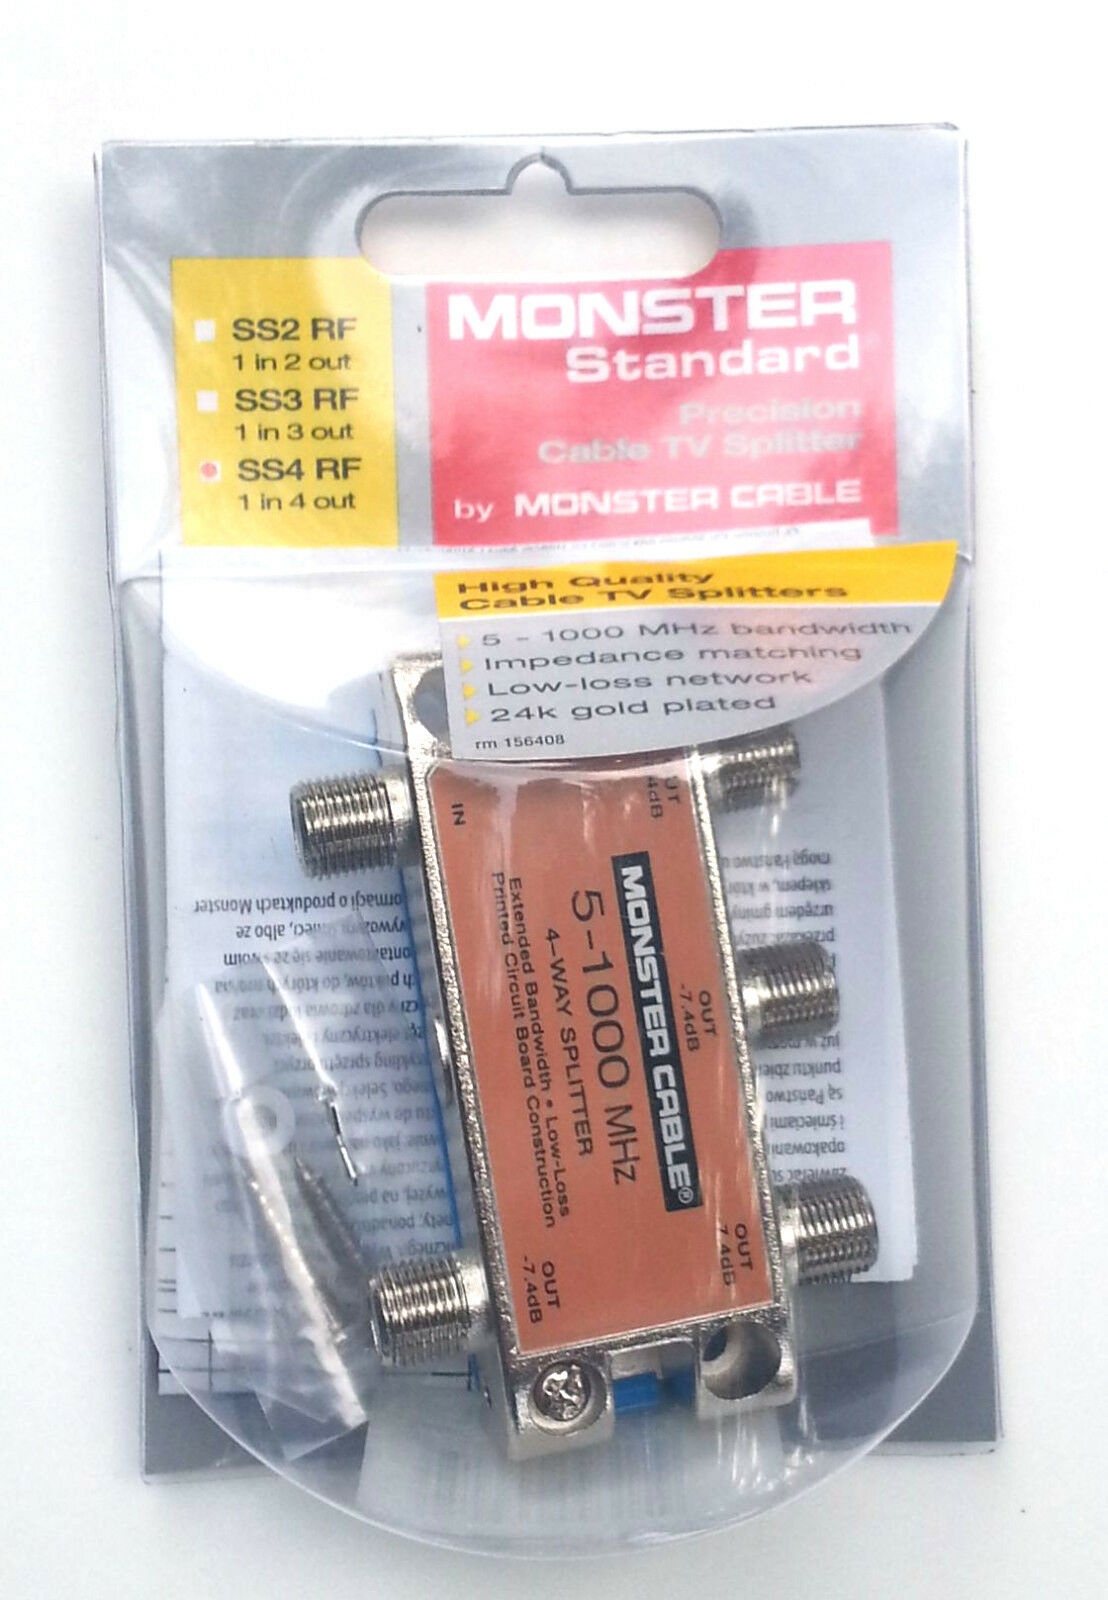 Monster Cable Standard Tv Rf Coax Splitter 1 In 4 Out 359 Picclick Trouble With Using Vcr And Of 1free Shipping